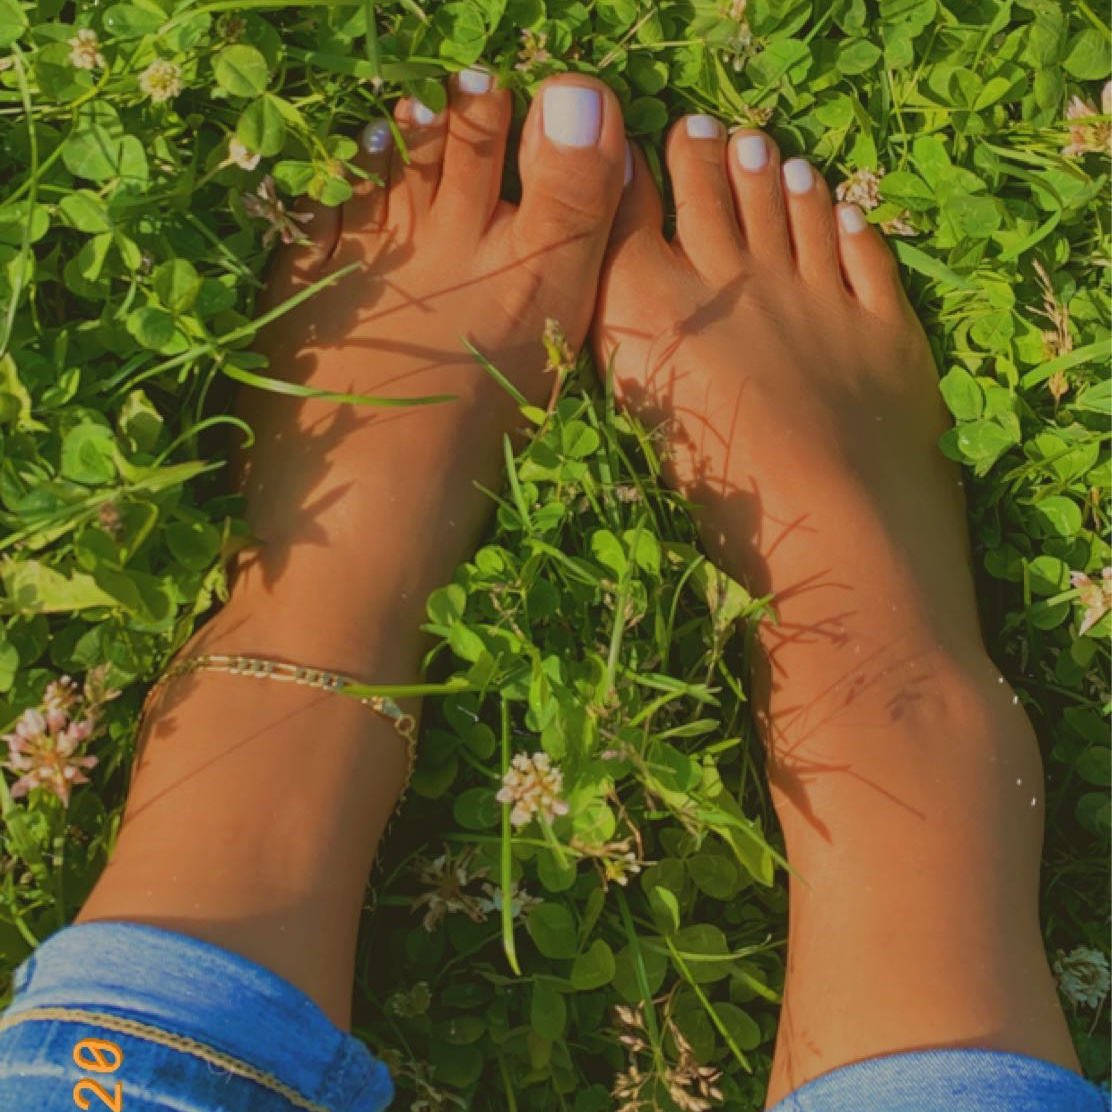 Love putting my feet in the grass  #feetqueen #feetbeautiful #onlyfansnewbie #onlyfansbabe #footfetish #Subscribe #followforfollow pic.twitter.com/Dp5CgSq18F